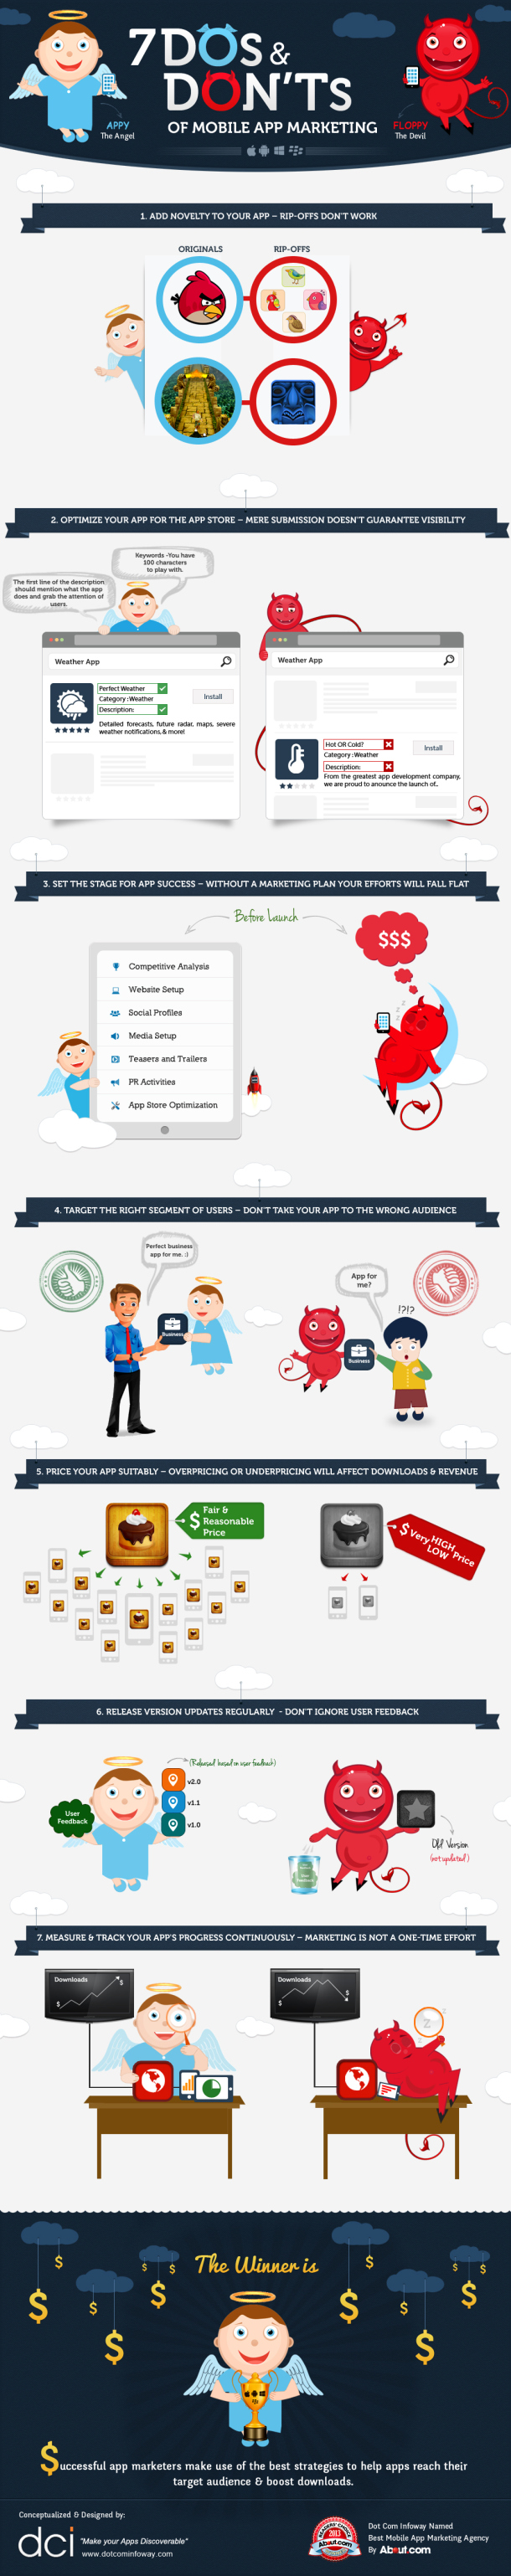 infographic-7-dos-and-donts-of-mobile-app-marketing.jpg